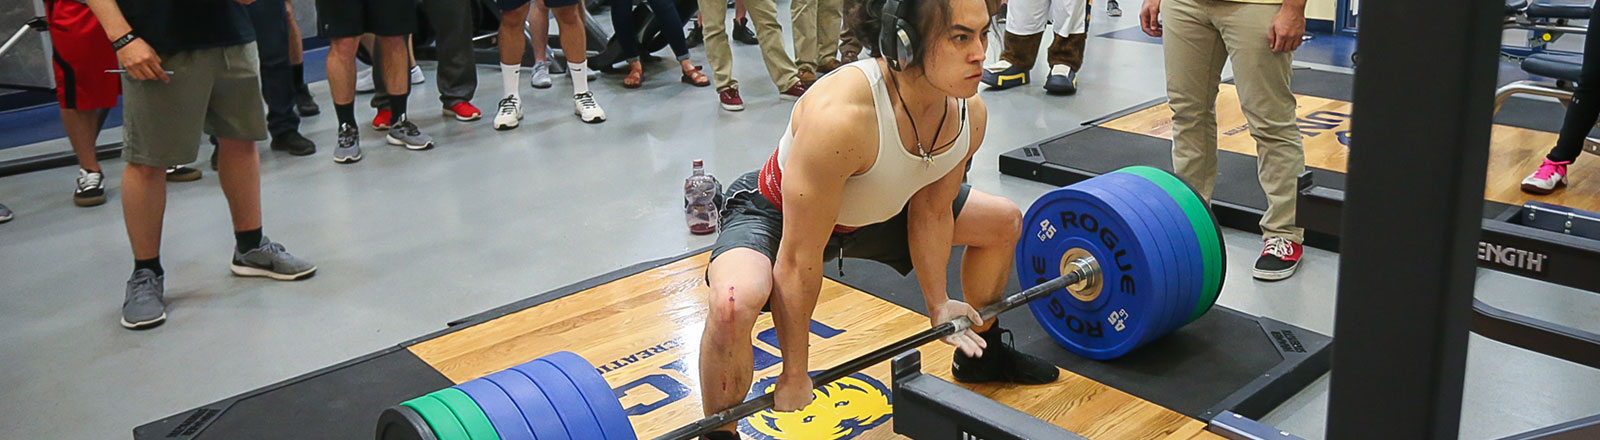 Student powerlifting in the recreation center